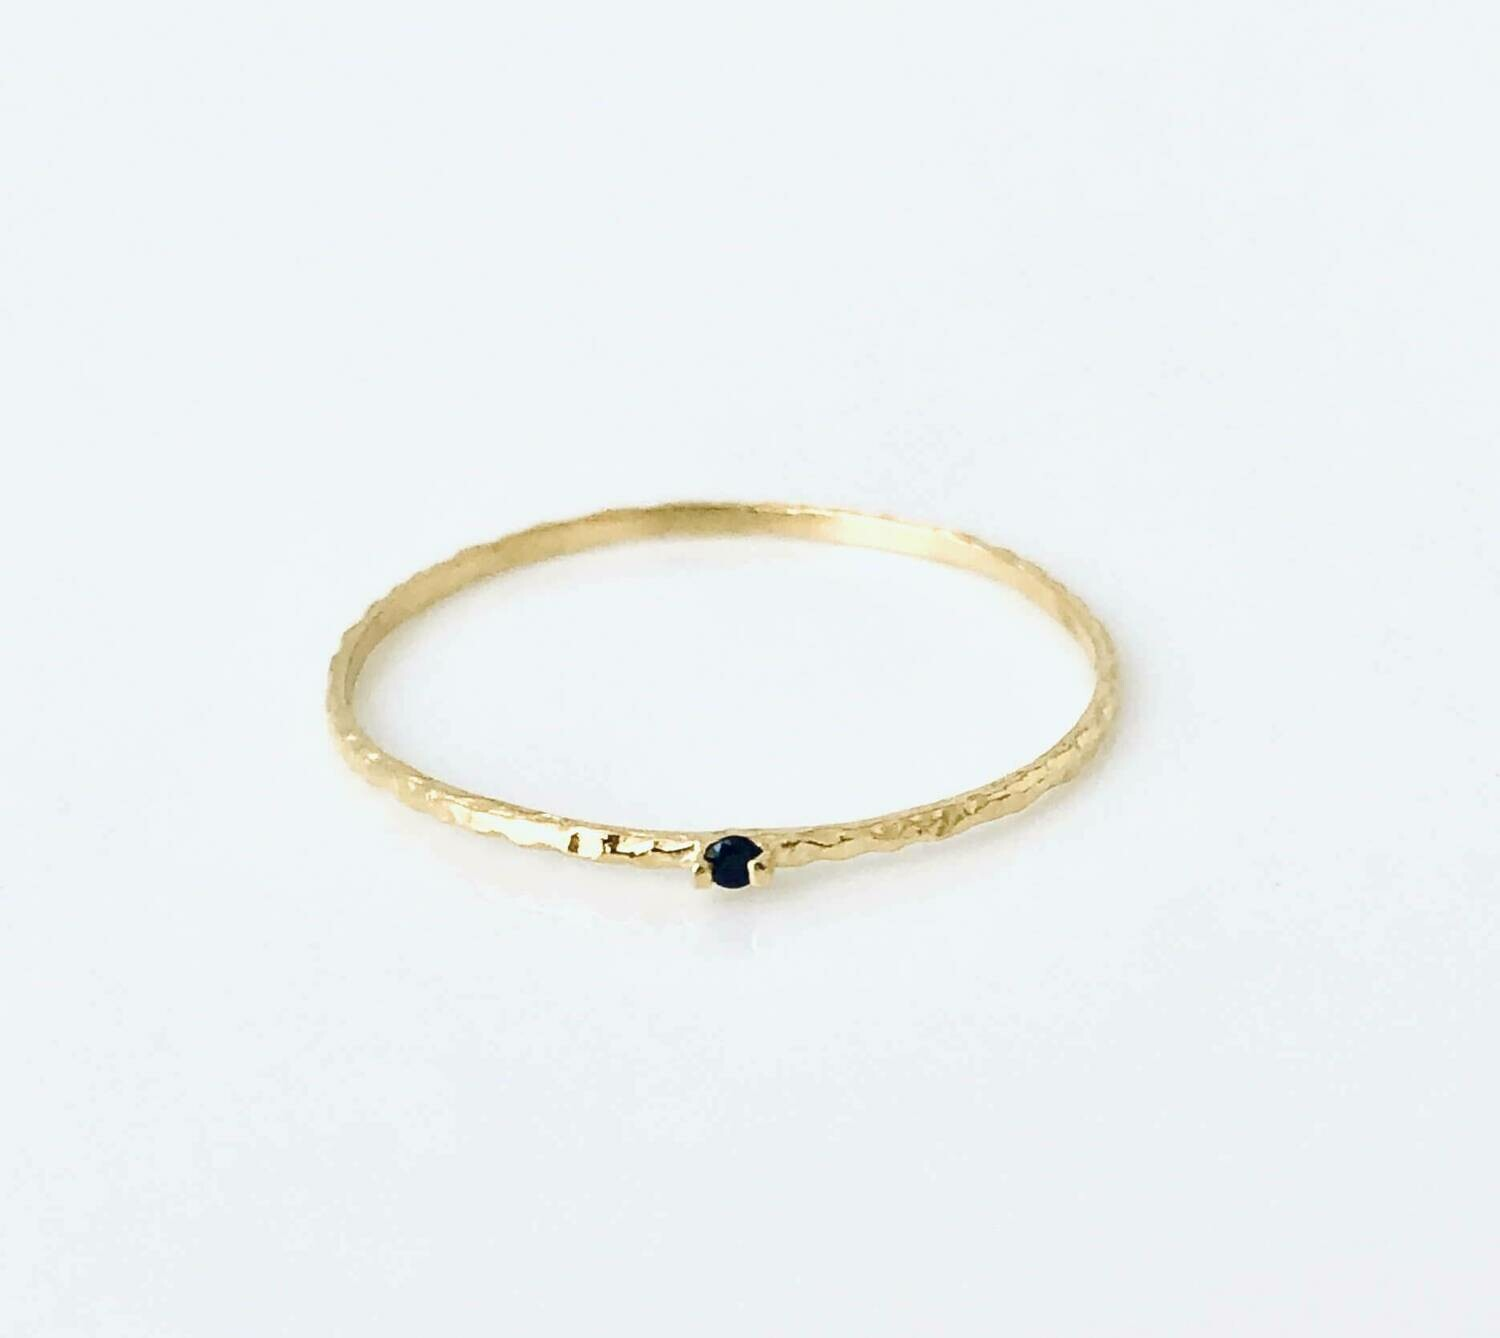 14k gold plate sterling silver black cubic zirconia ring